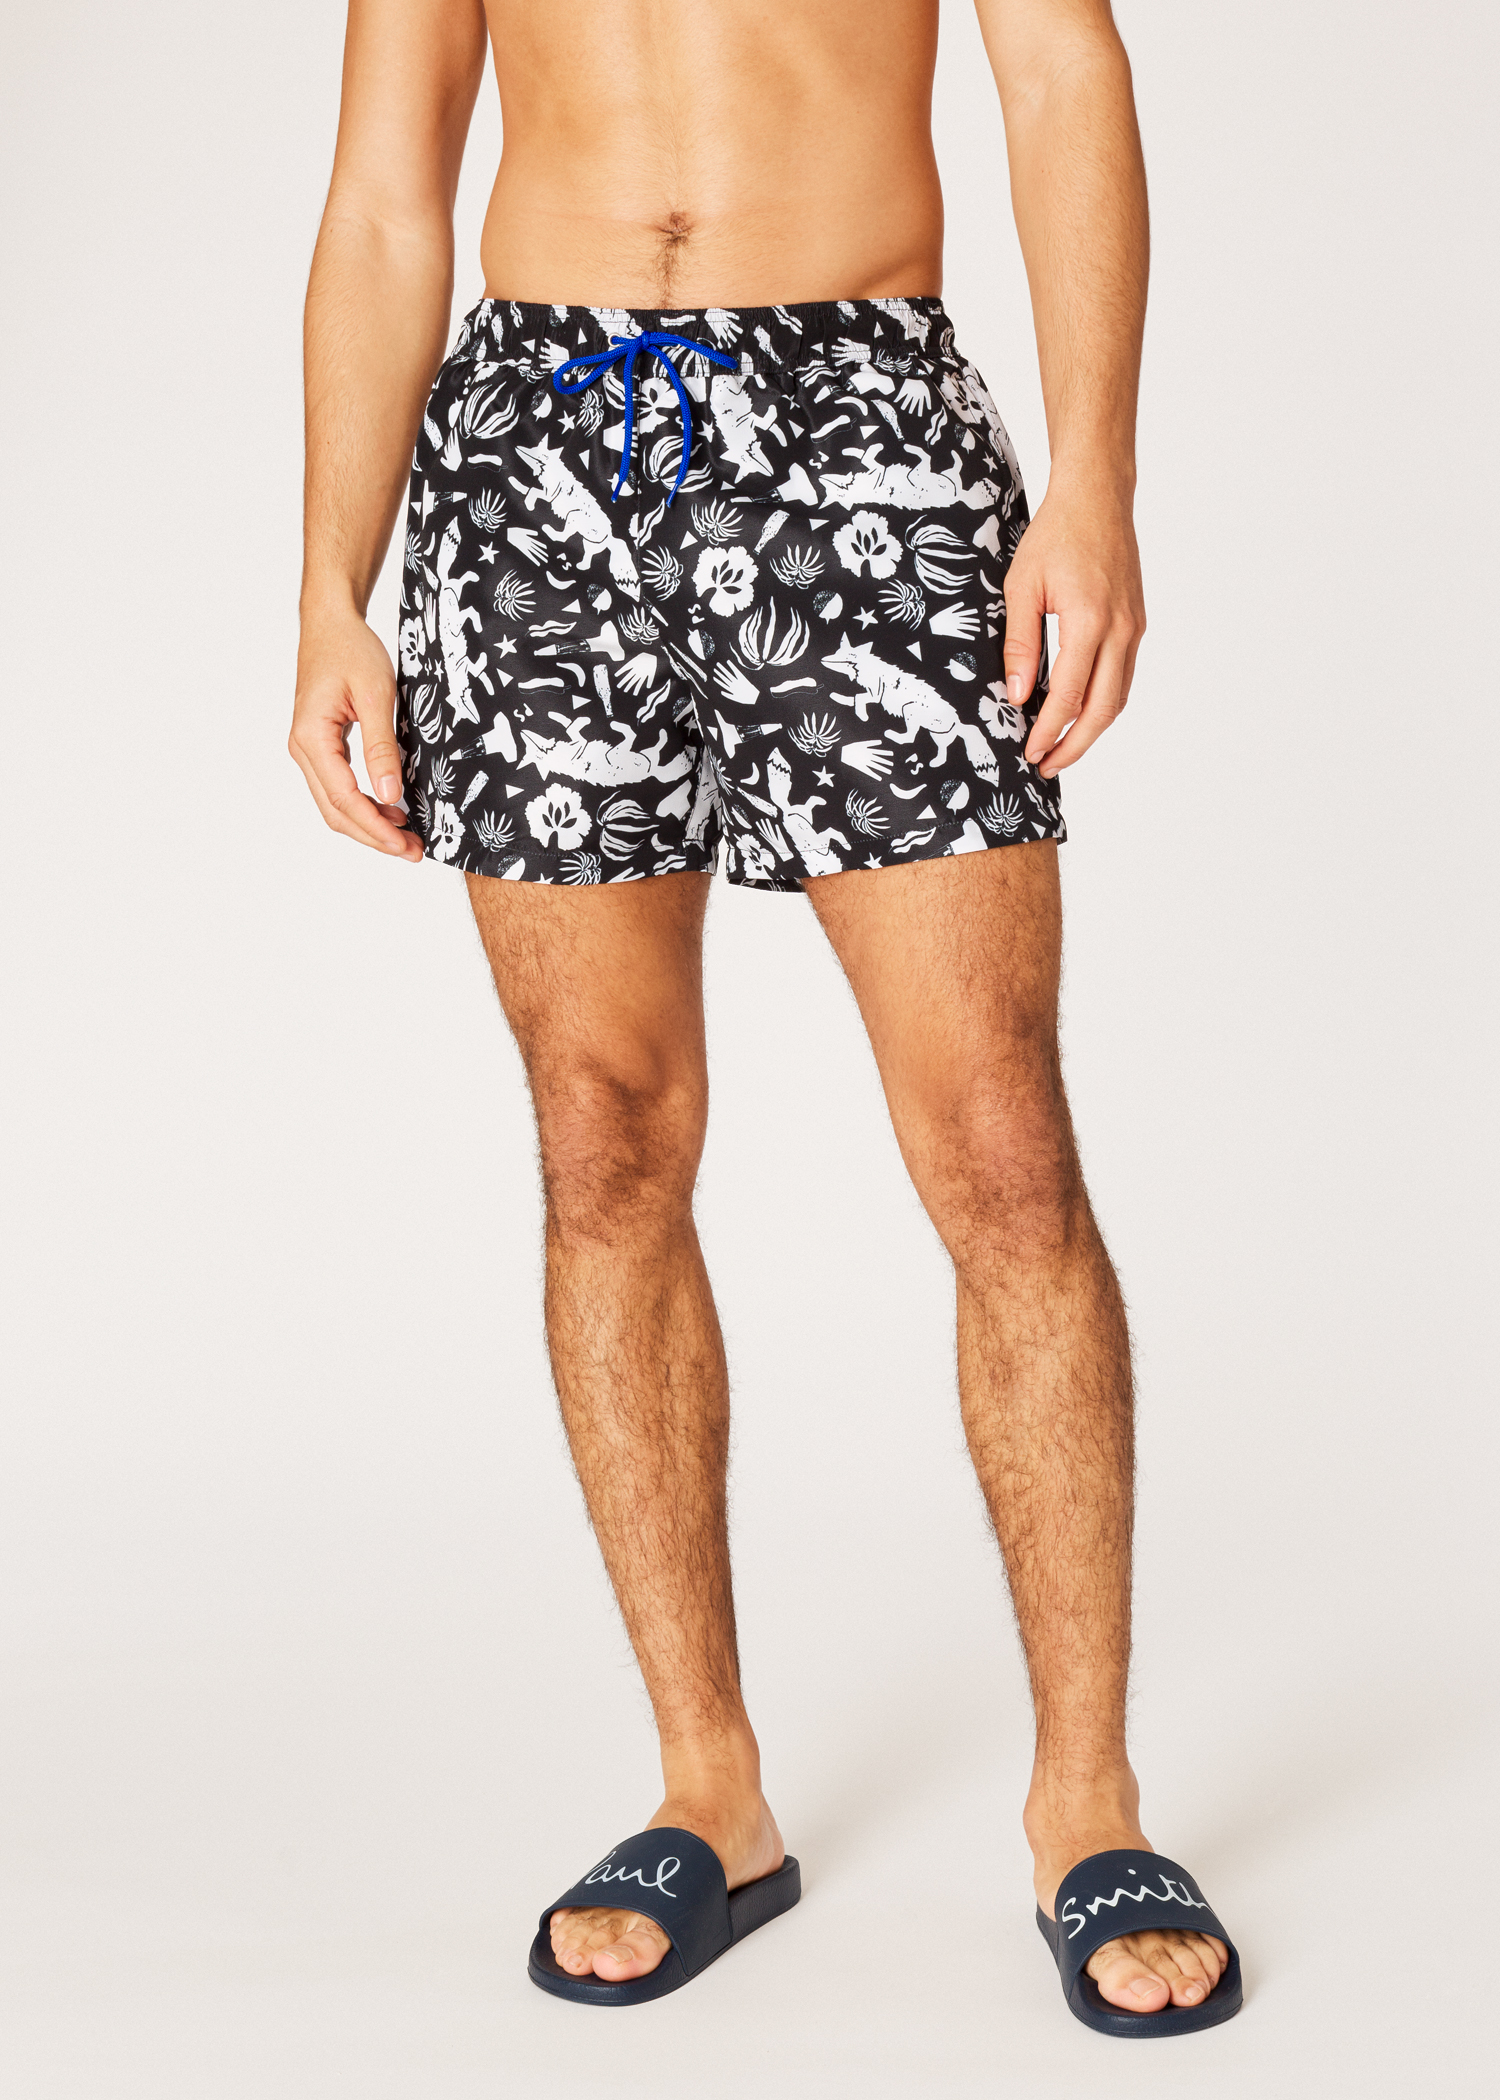 9728b7ebbf Model front View - Men's Black 'Urban Fox' Print Swim Shorts Paul Smith